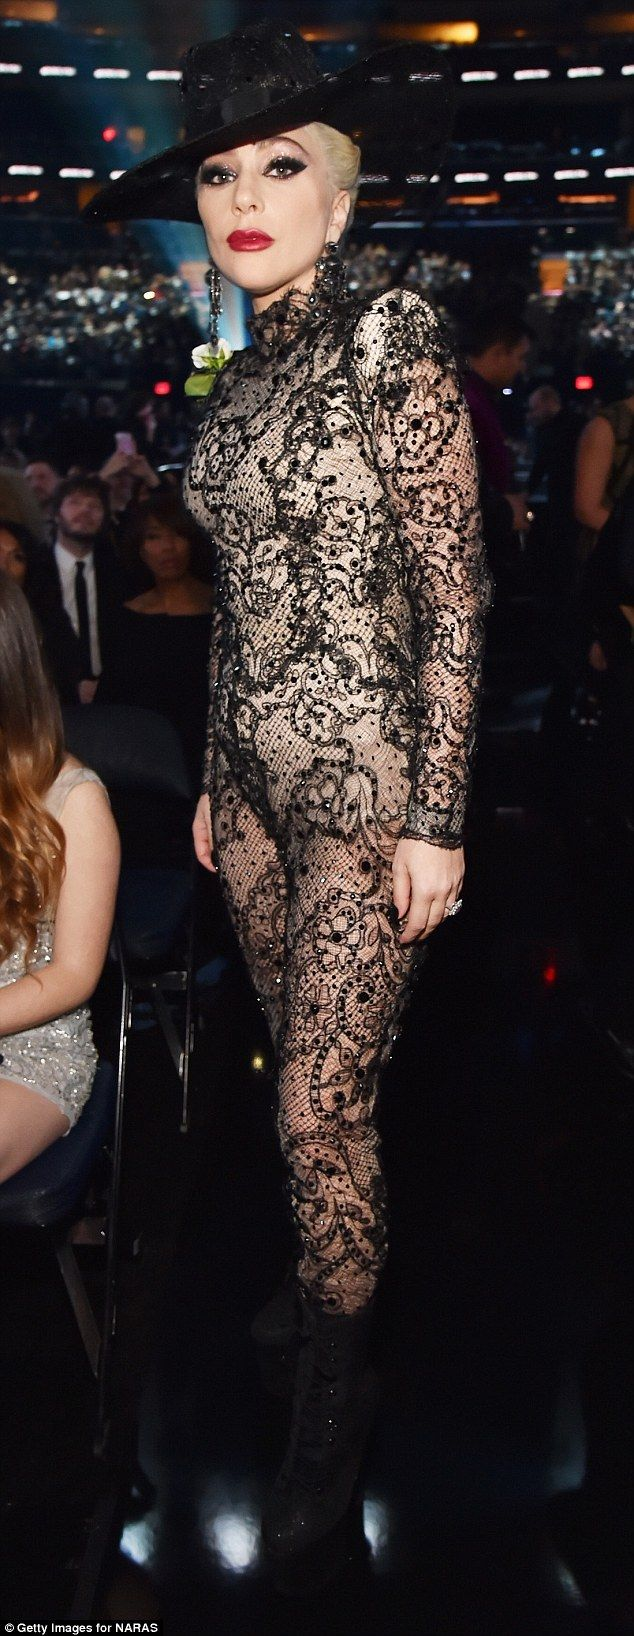 Grammys: Lady Gaga whips off dress to reveal lace bodysuit | Daily Mail Online